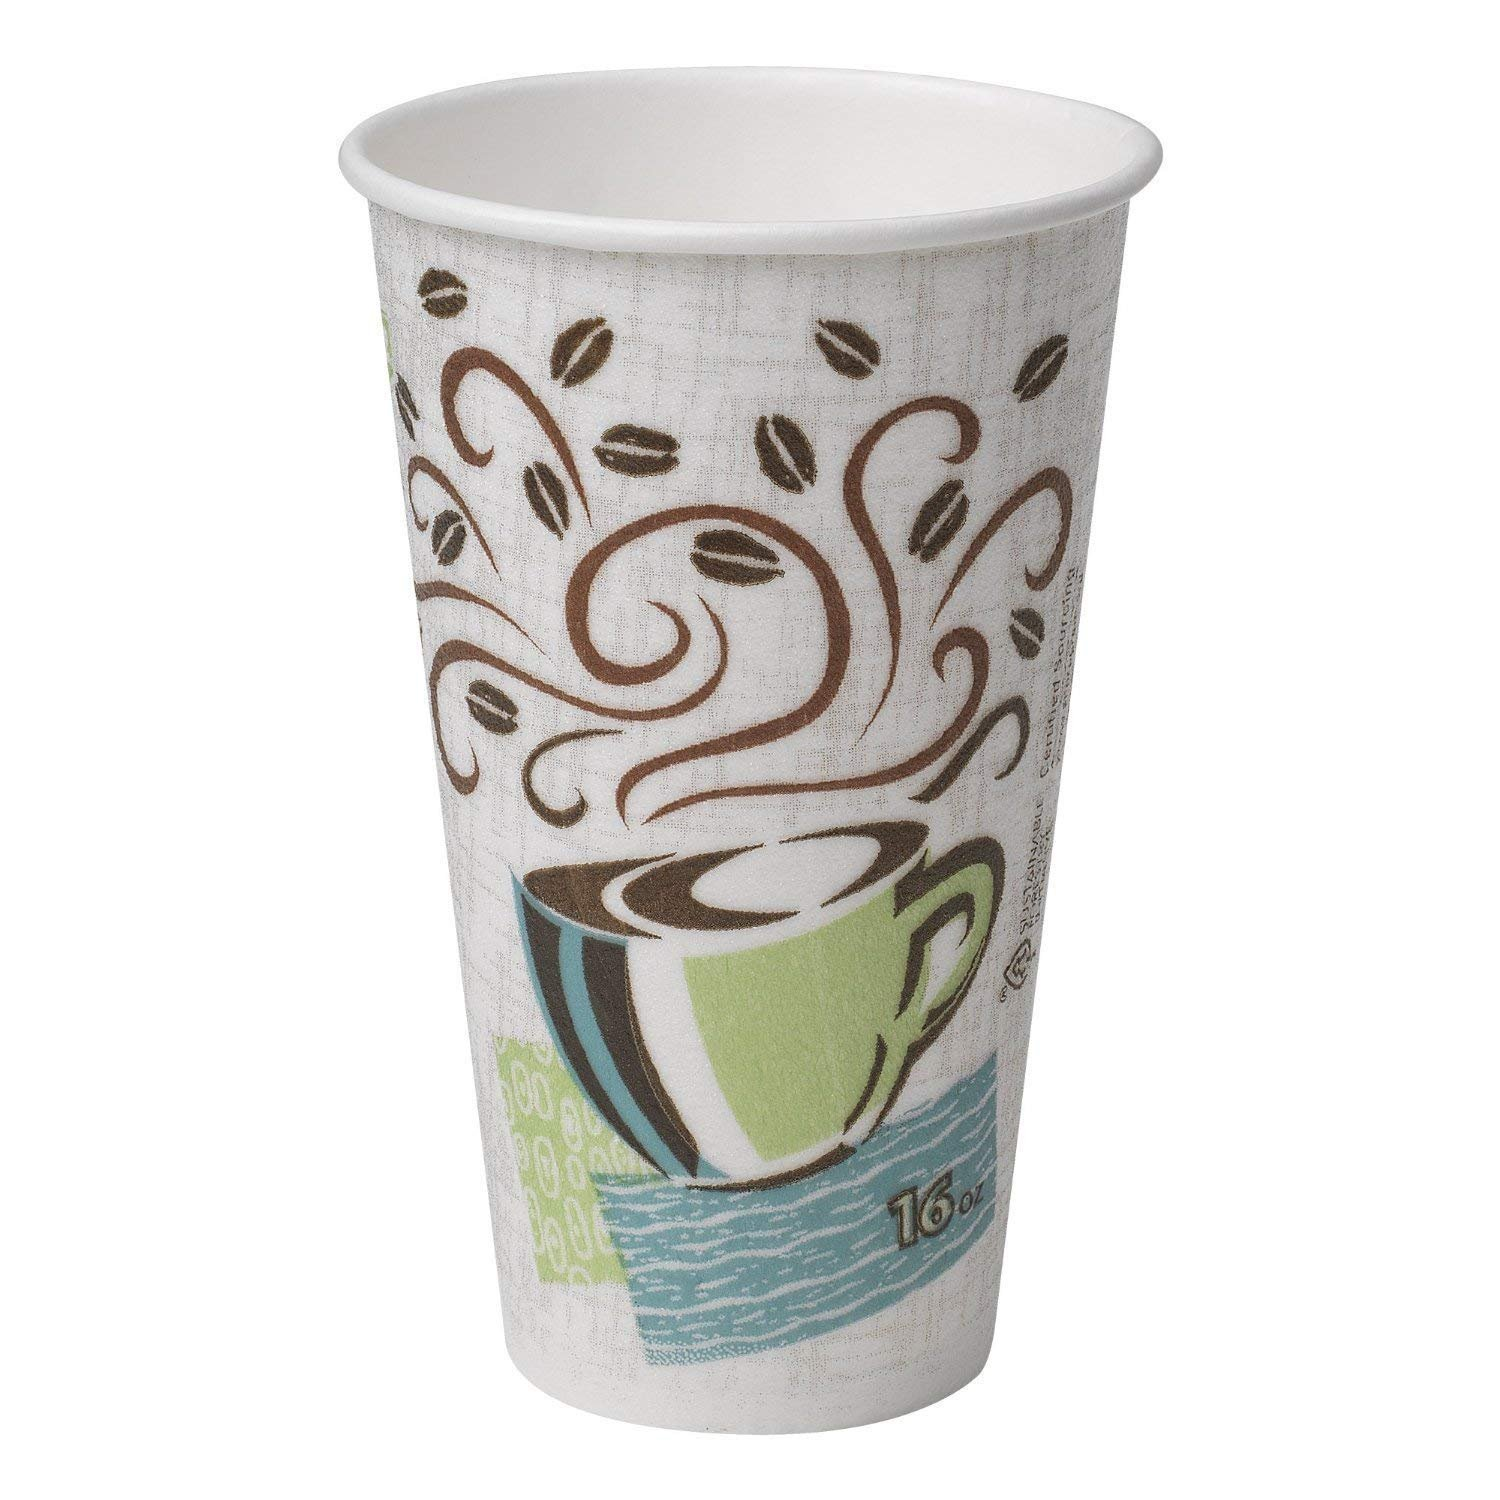 Dixie Perfectouch Insulated Paper Hot Cup, Coffee Haze Design, 75 Count 16oz by Dixie